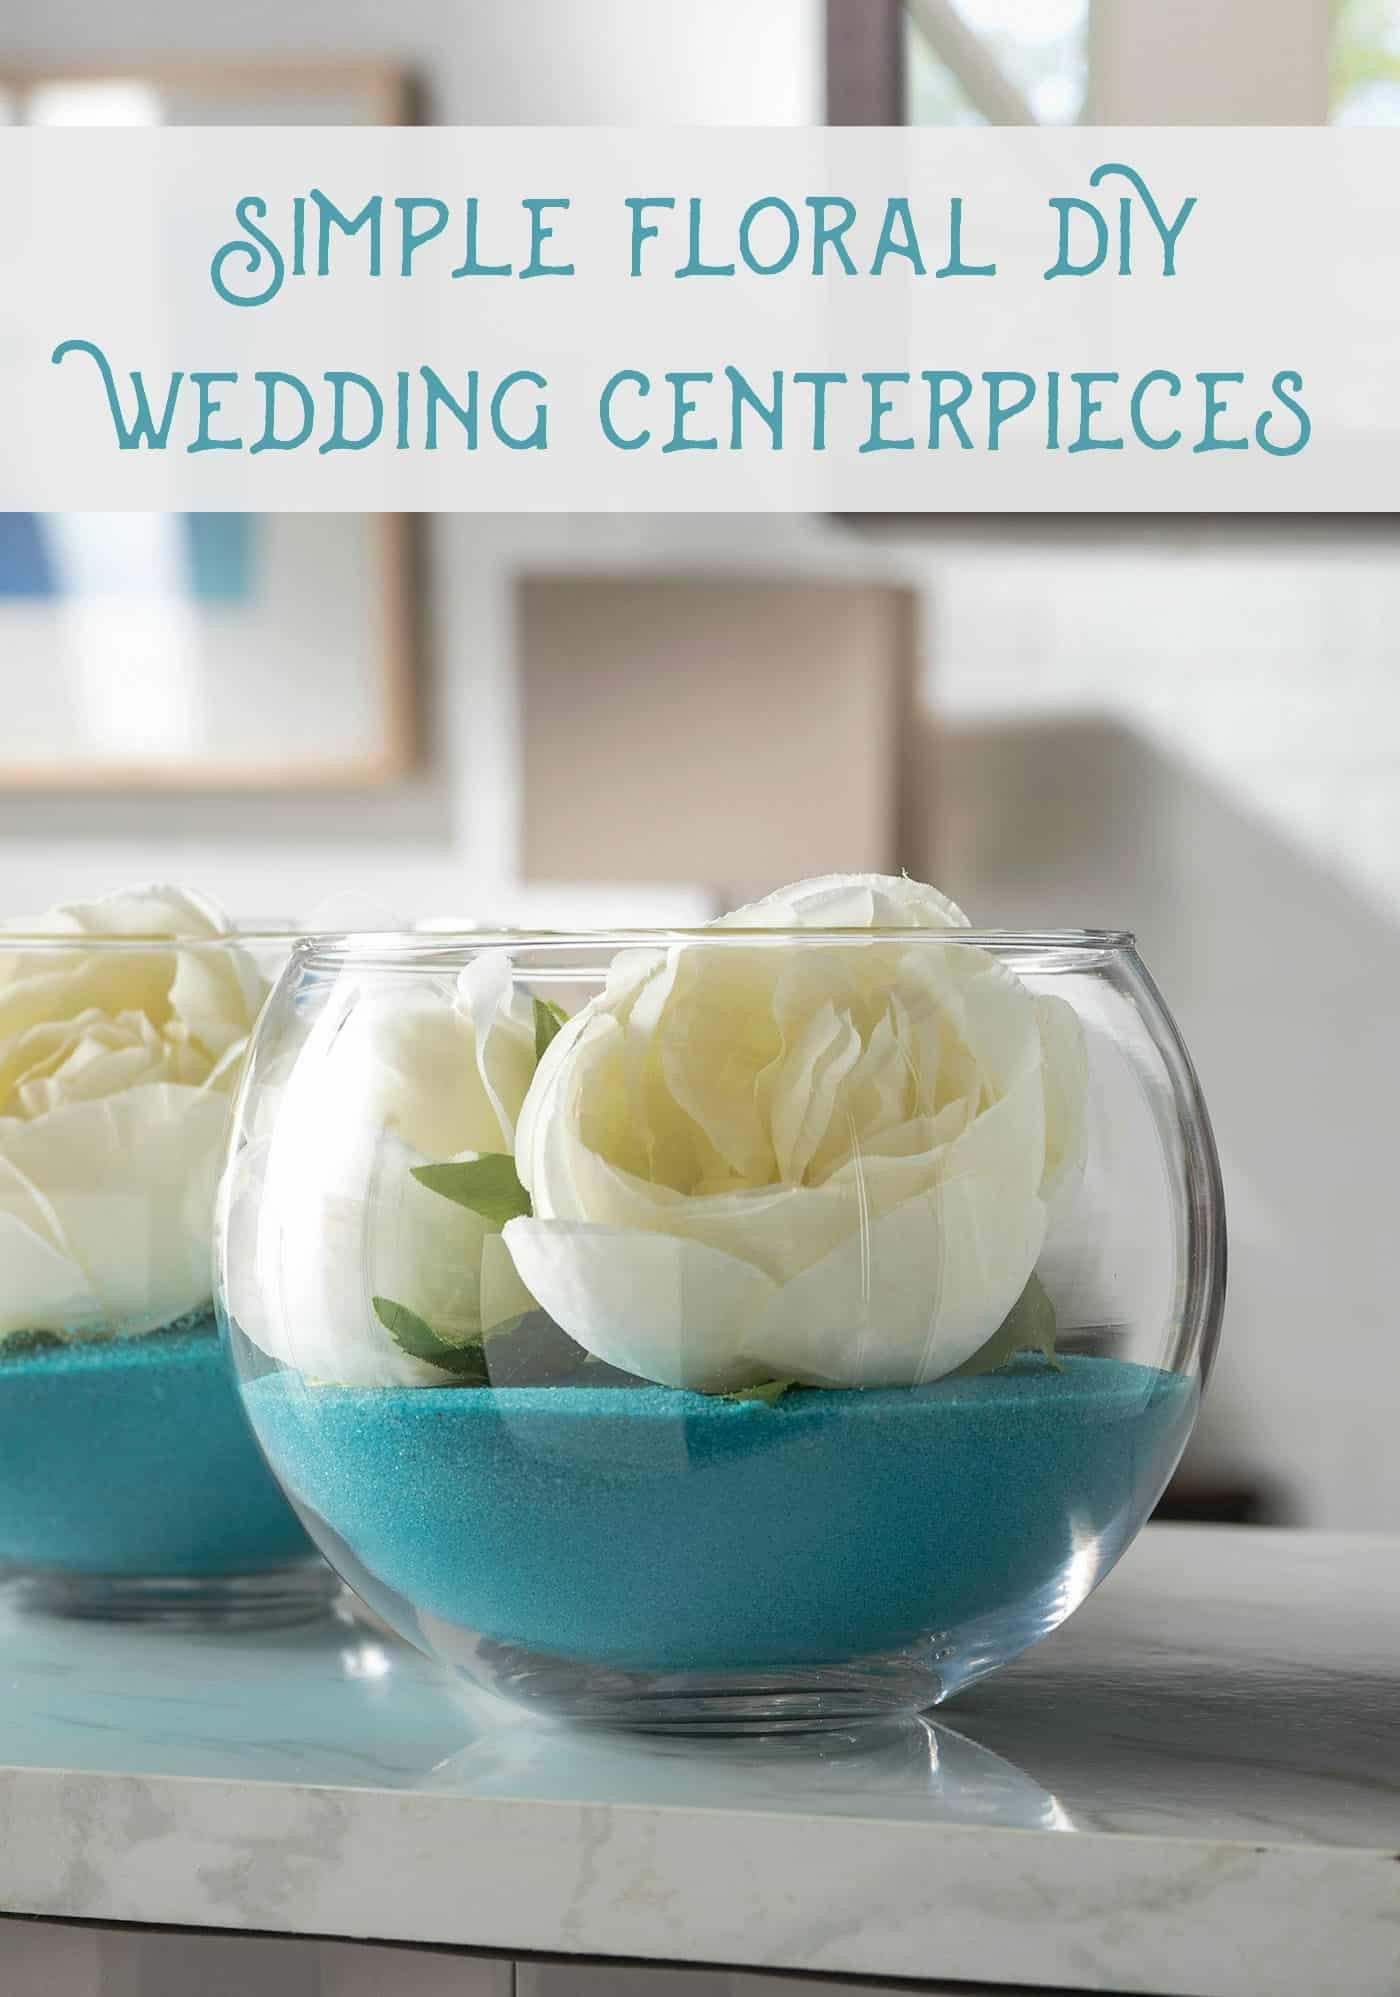 Best ideas about Simple Wedding Centerpieces DIY . Save or Pin Quick Floral DIY Wedding Centerpieces diycandy Now.